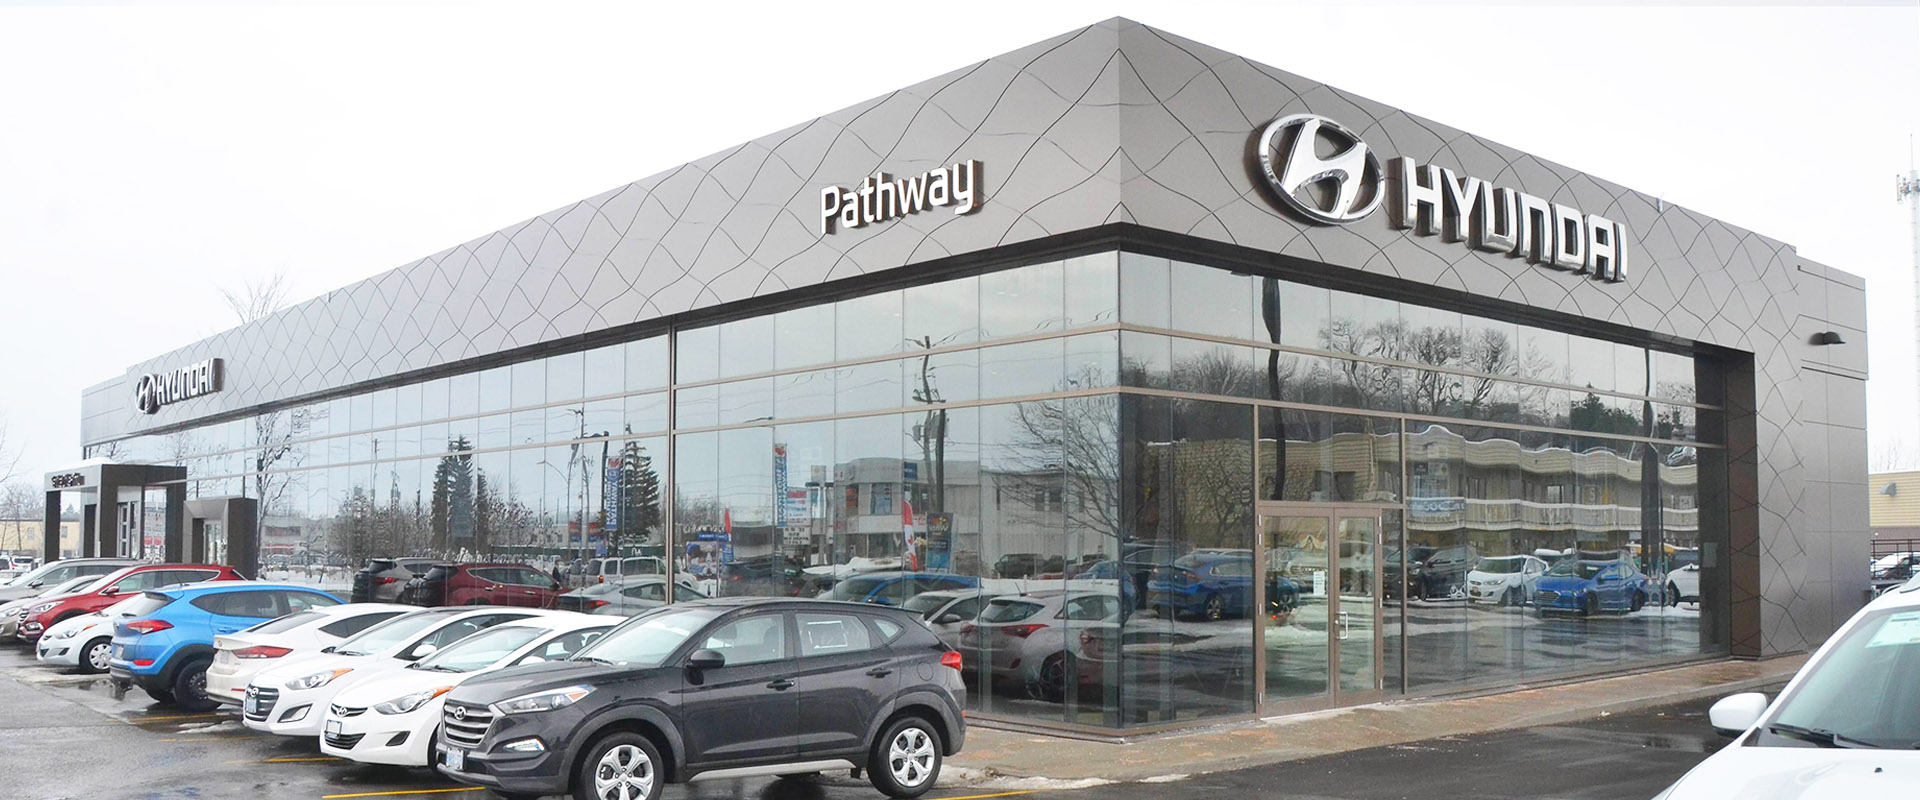 New Pathway Hyundai Building in Ottawa ON